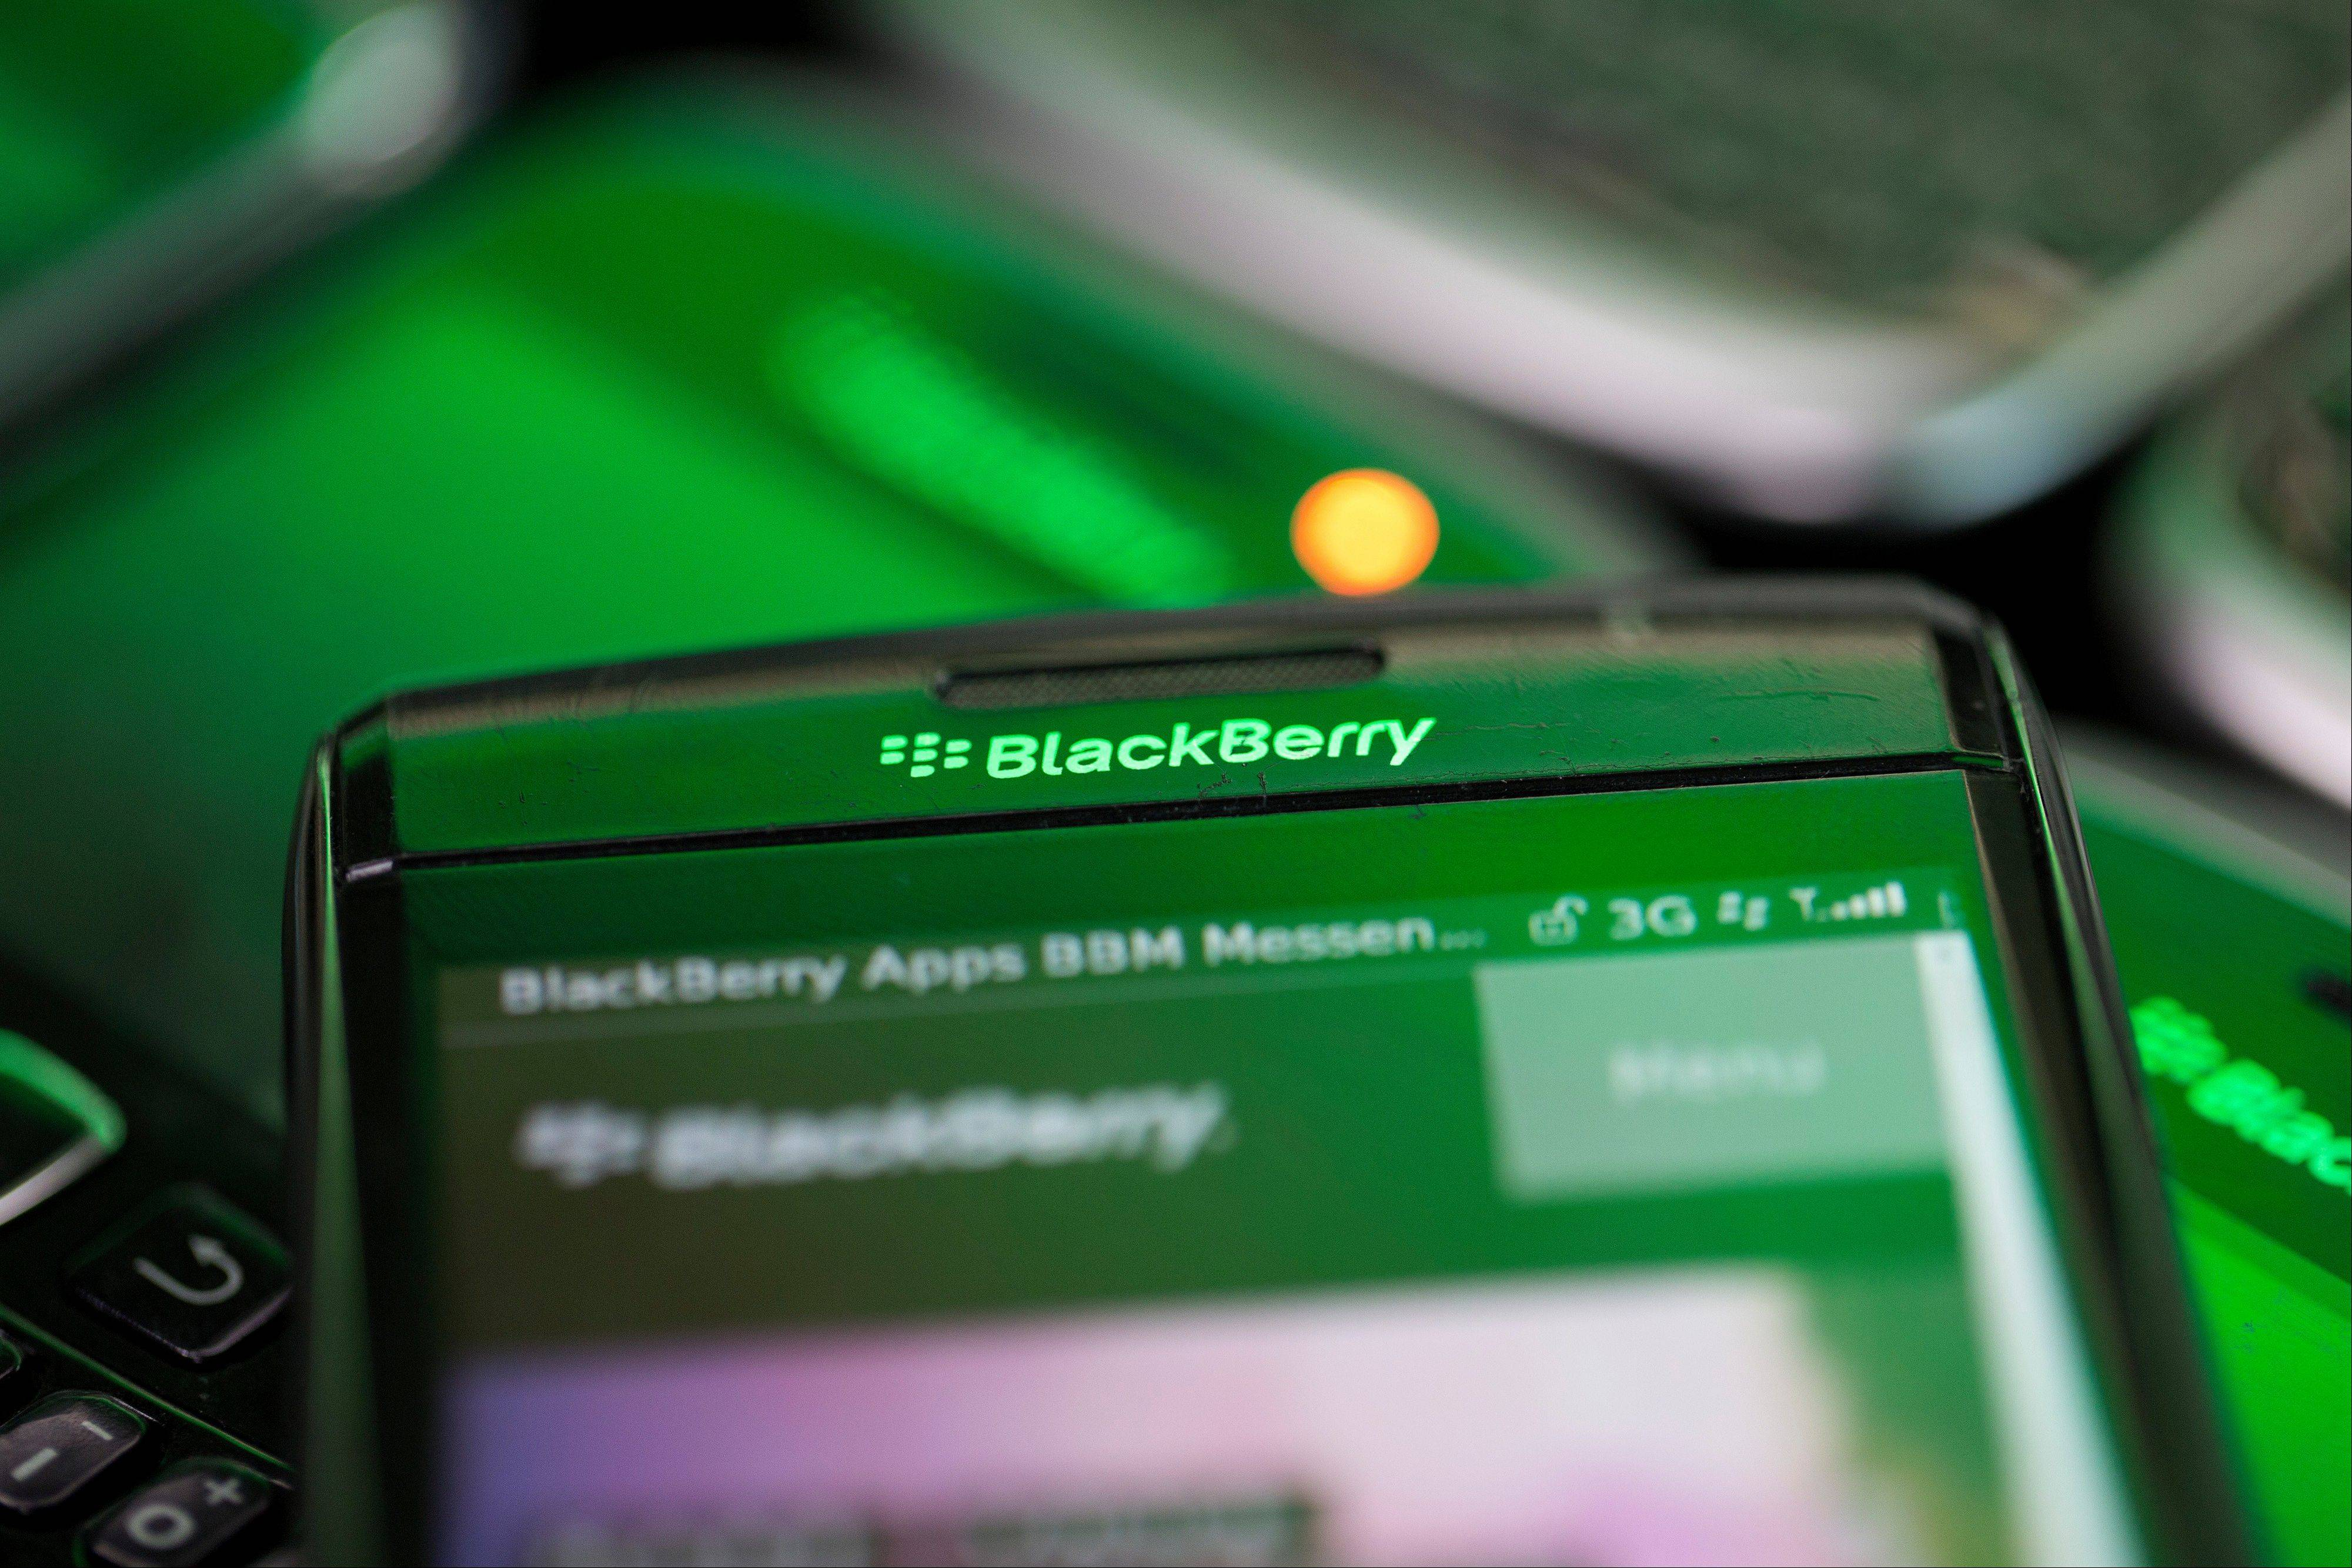 The federal government is BlackBerry's biggest customer, and even as the rest of the world dumps the firm's smartphone for Samsung Galaxys and iPhones, the app-deprived BlackBerry remains a Washington stalwart.